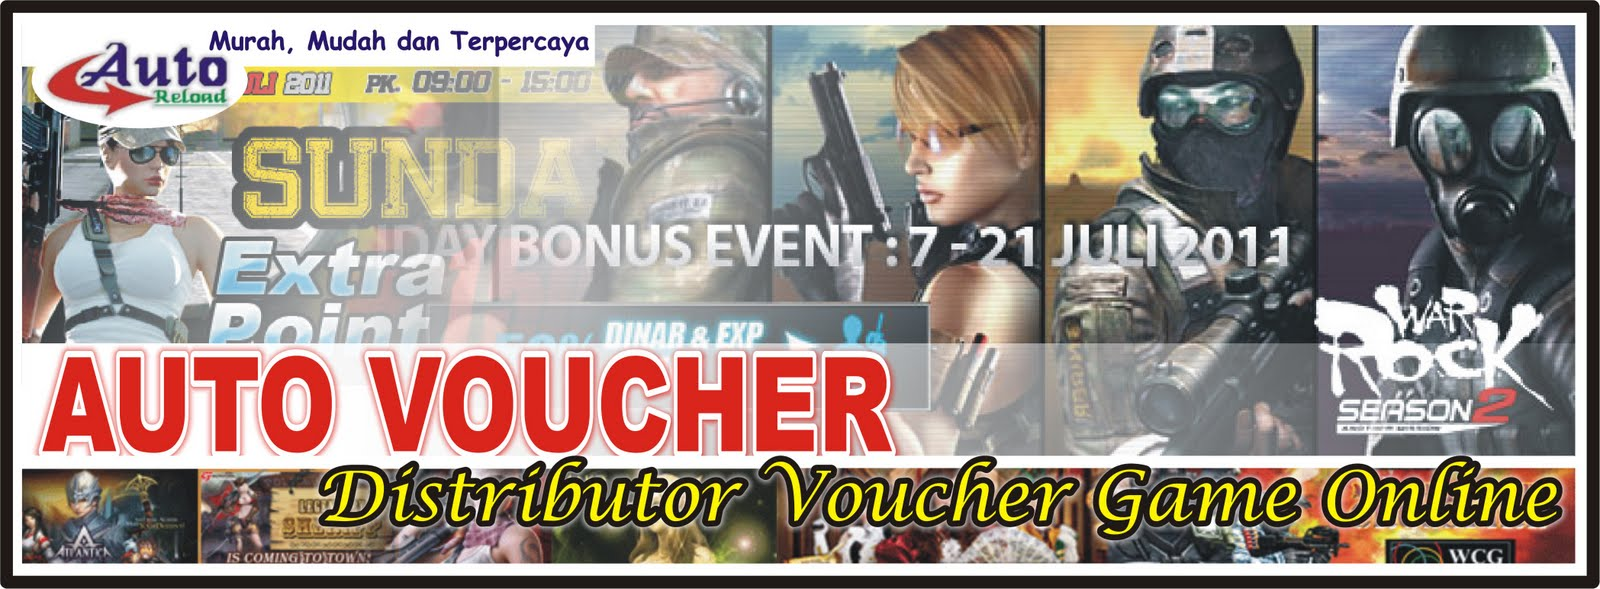 Voucher Game Online